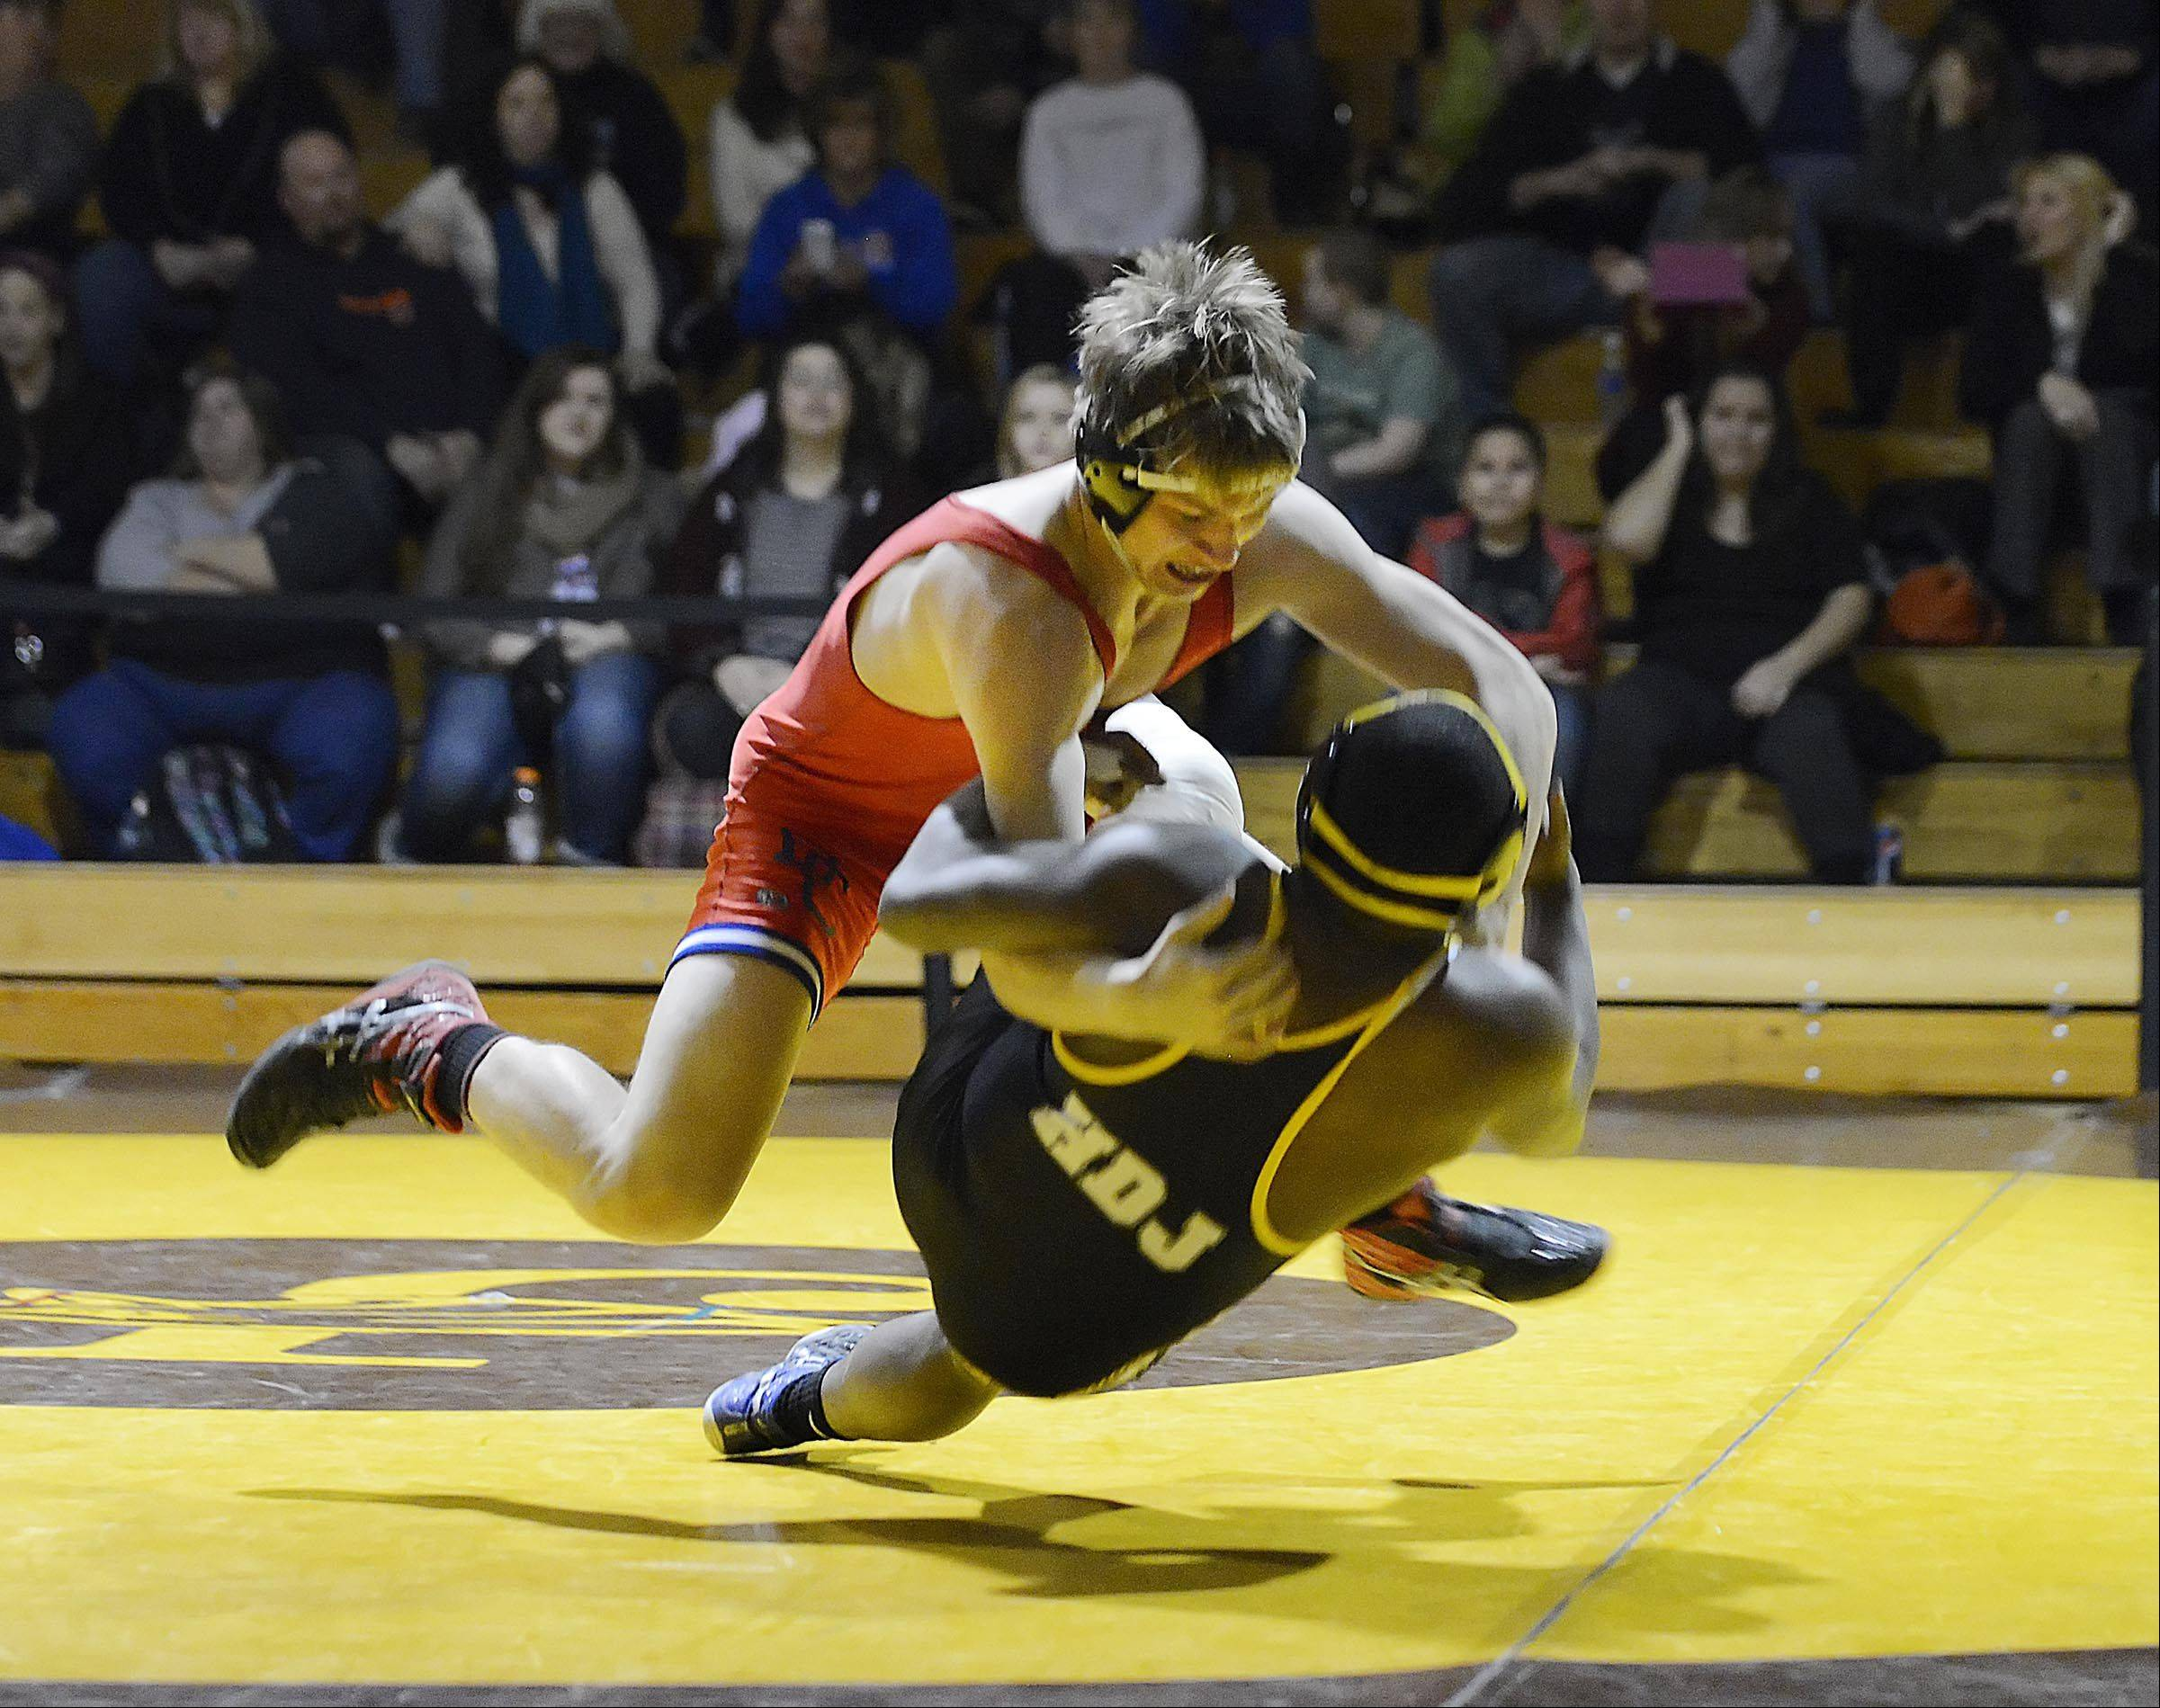 Dundee-Crown's Jarrod Raap and Jacobs' Charles Goins fall to the mat during their 182-pound match Thursday in Algonquin.